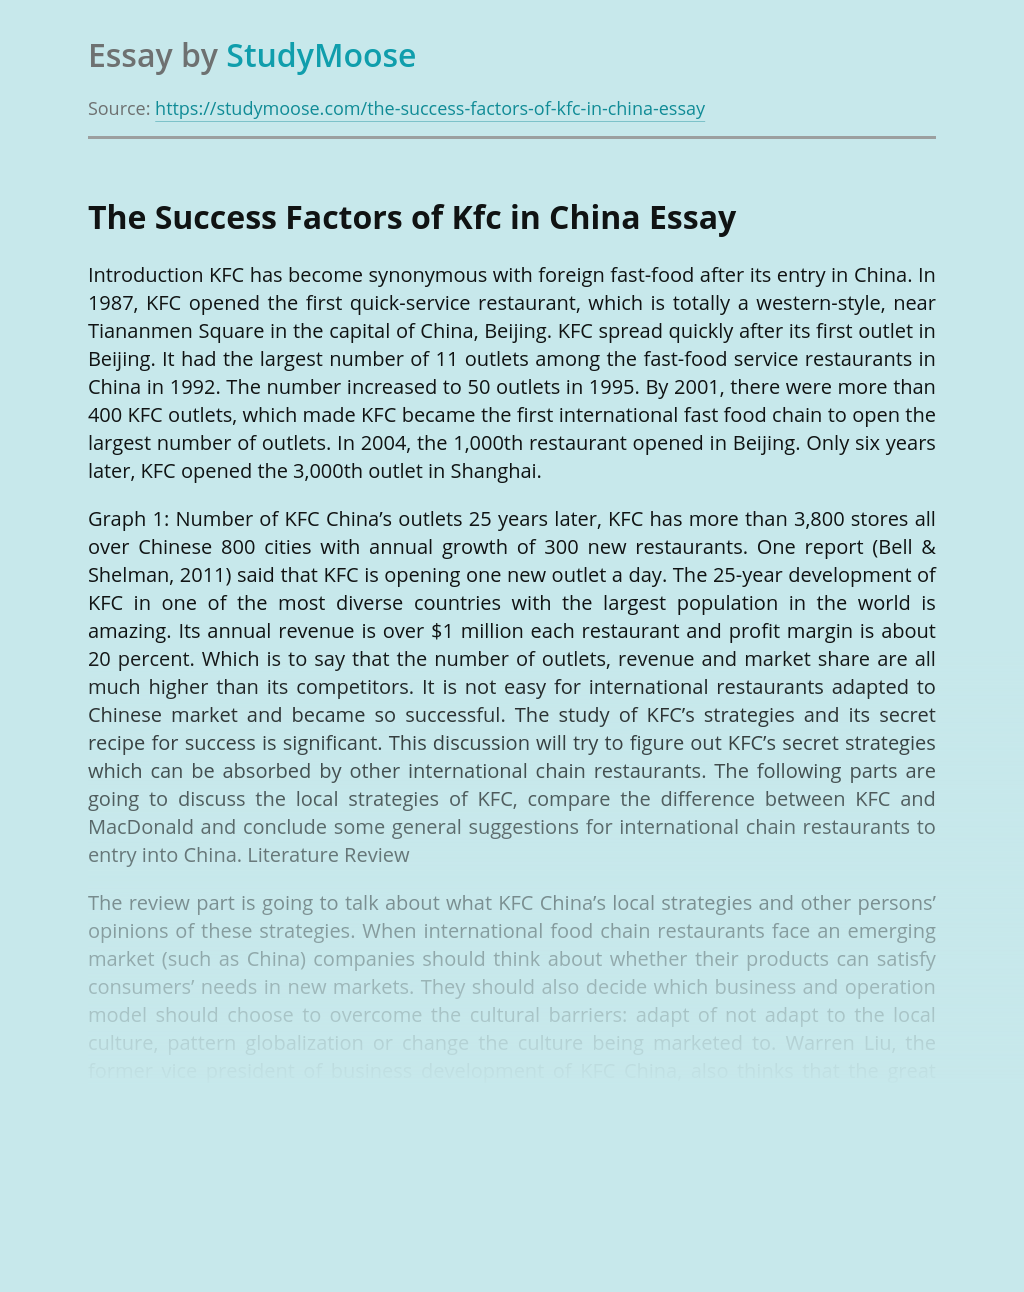 The Success Factors of Kfc in China